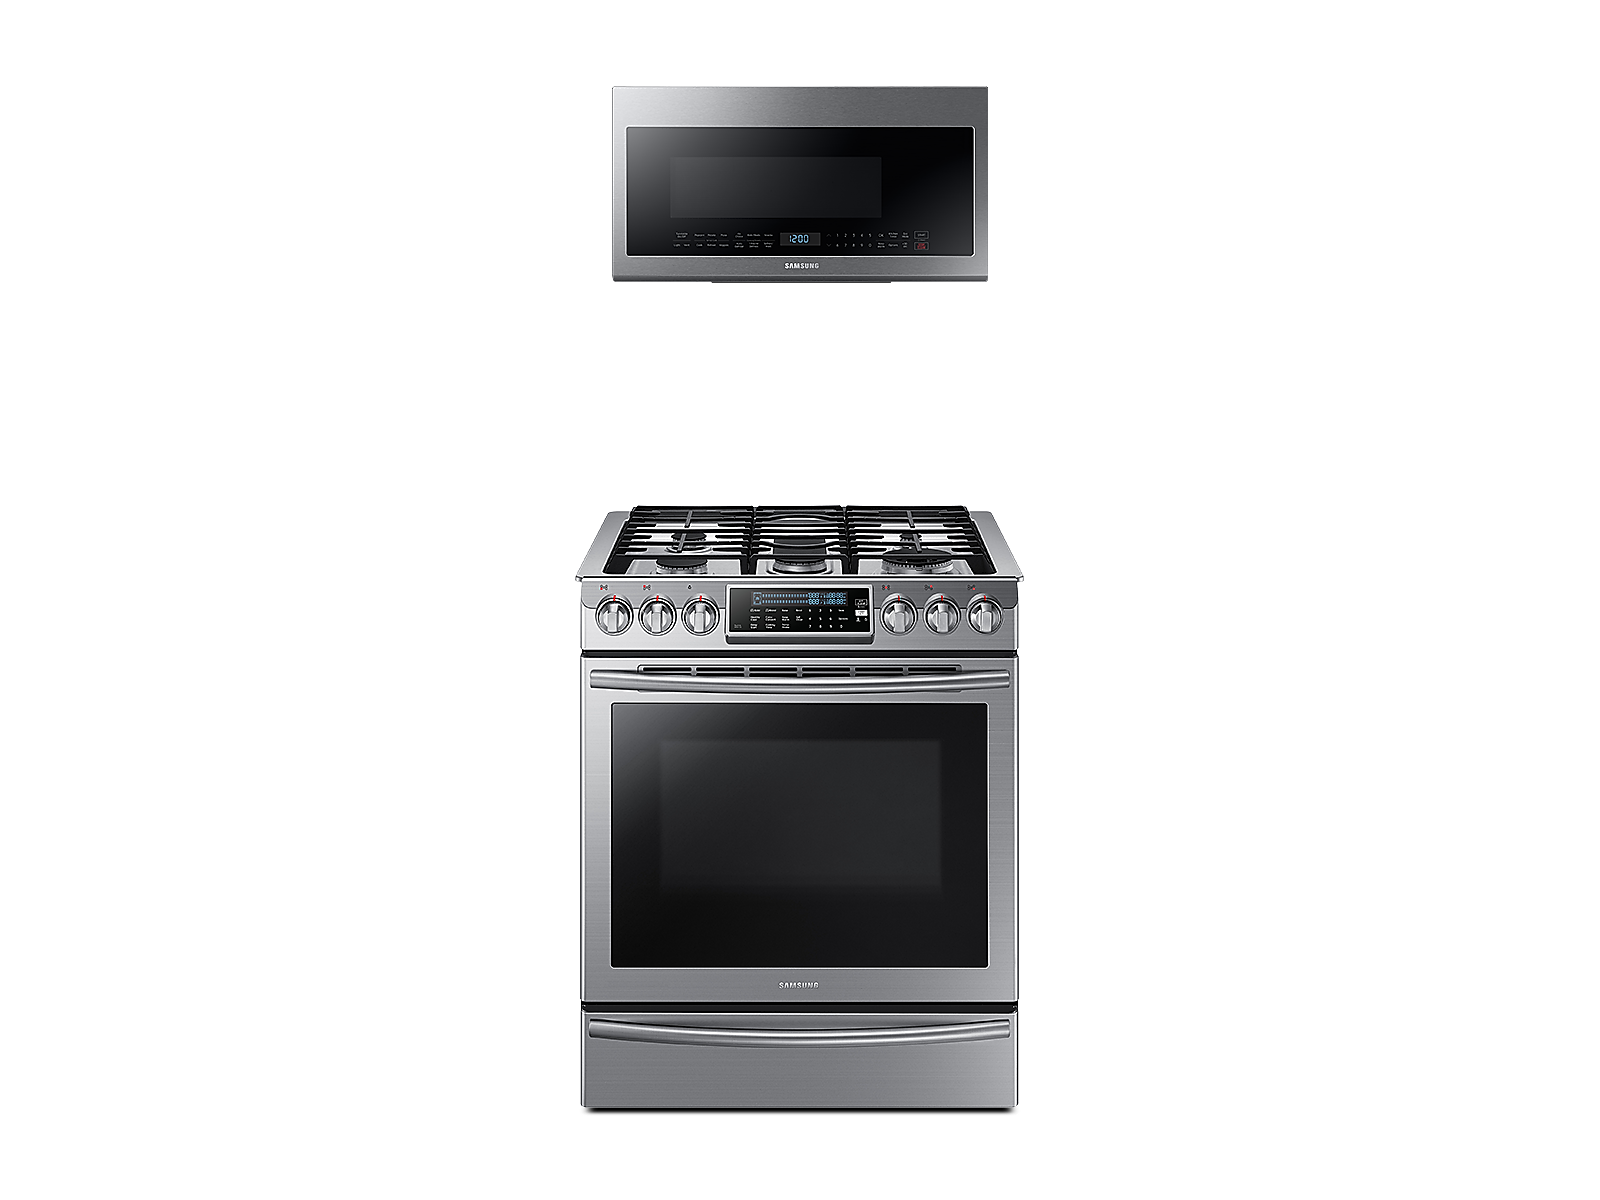 Samsung Slide-In Gas Range with True Convection + Over-the-Range Microwave in Stainless Steel(BNDL-1580226174992)